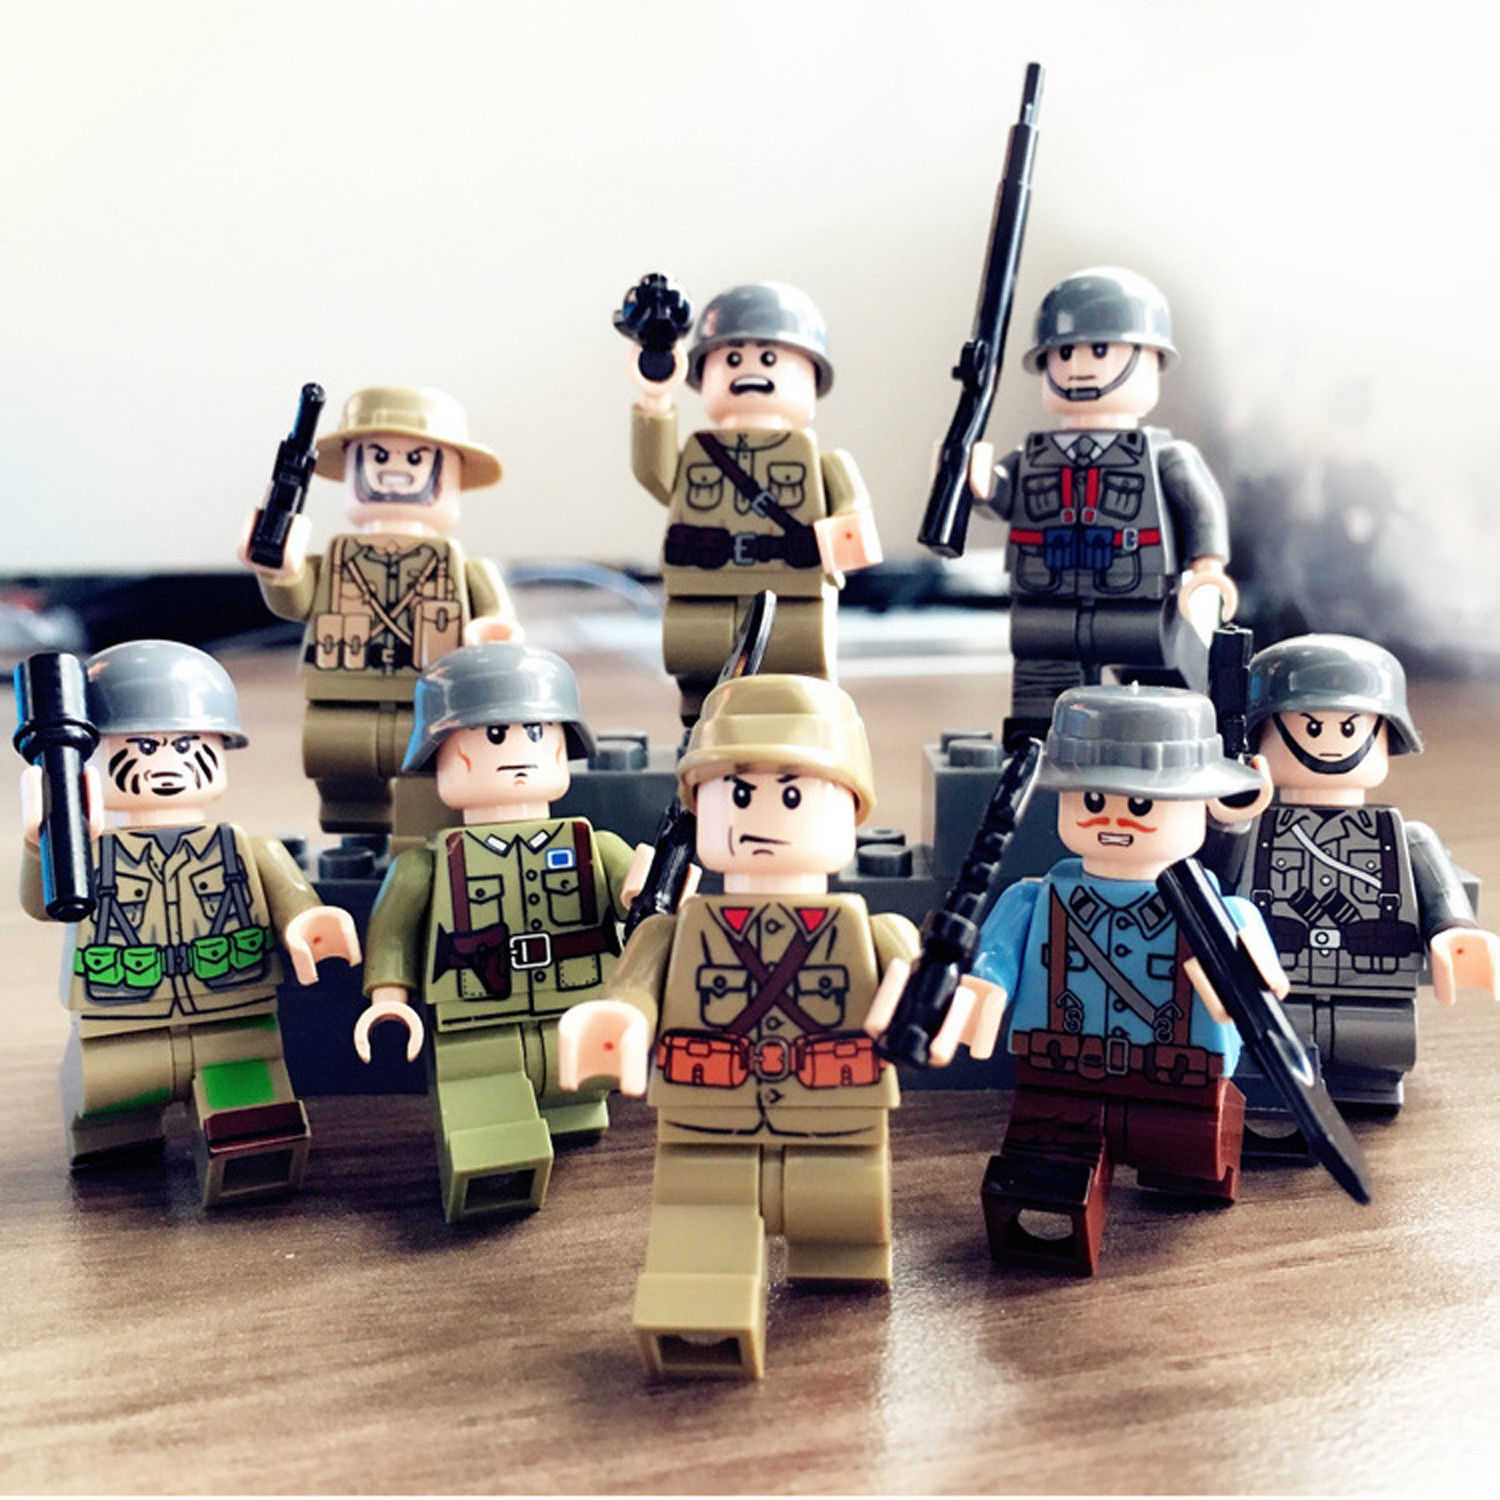 8PCS WW2 World War 2 Various Countries' Army Soldiers,Military Building Toy Set,Educational DIY Toys for Kids,Toys Dropshipping ancient knight 28pcs set soldiers and horses medieval model toy soldiers figures